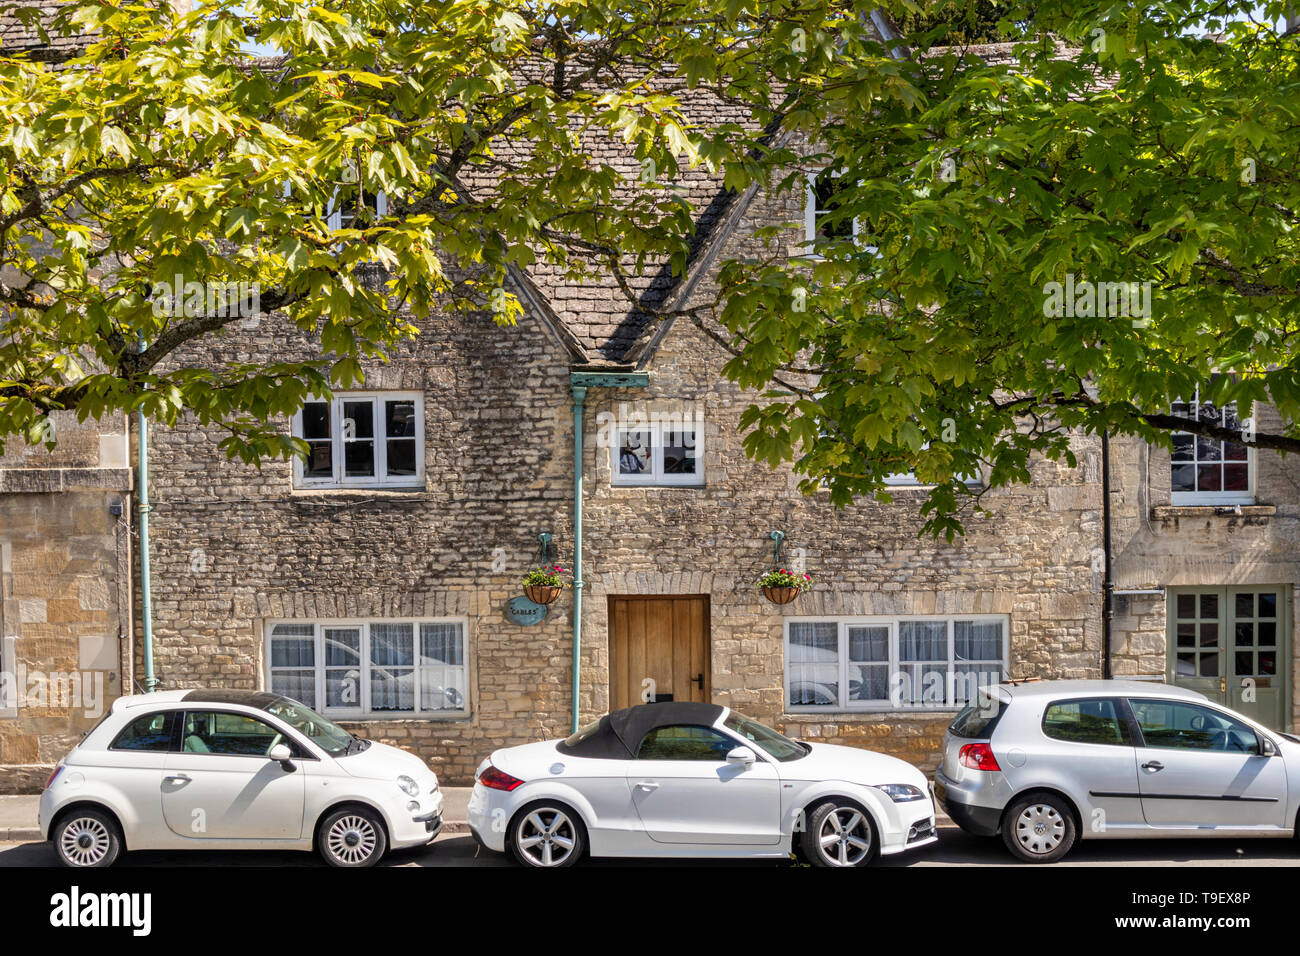 Old stone houses and new cars in the Market Place in the ancient Cotswold town of Northleach, Gloucestershire UK - Stock Image